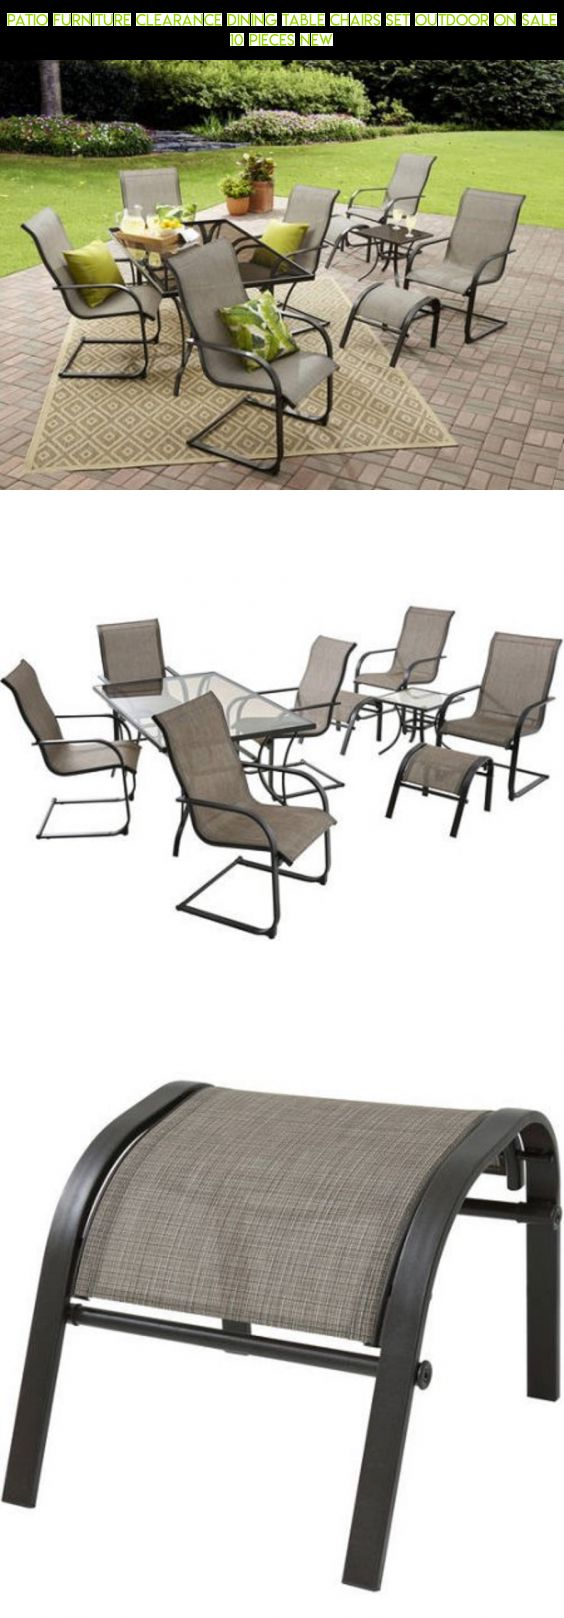 Patio Furniture Clearance Dining Table Chairs Set Outdoor On Sale 10 Pieces  NEW #patio #